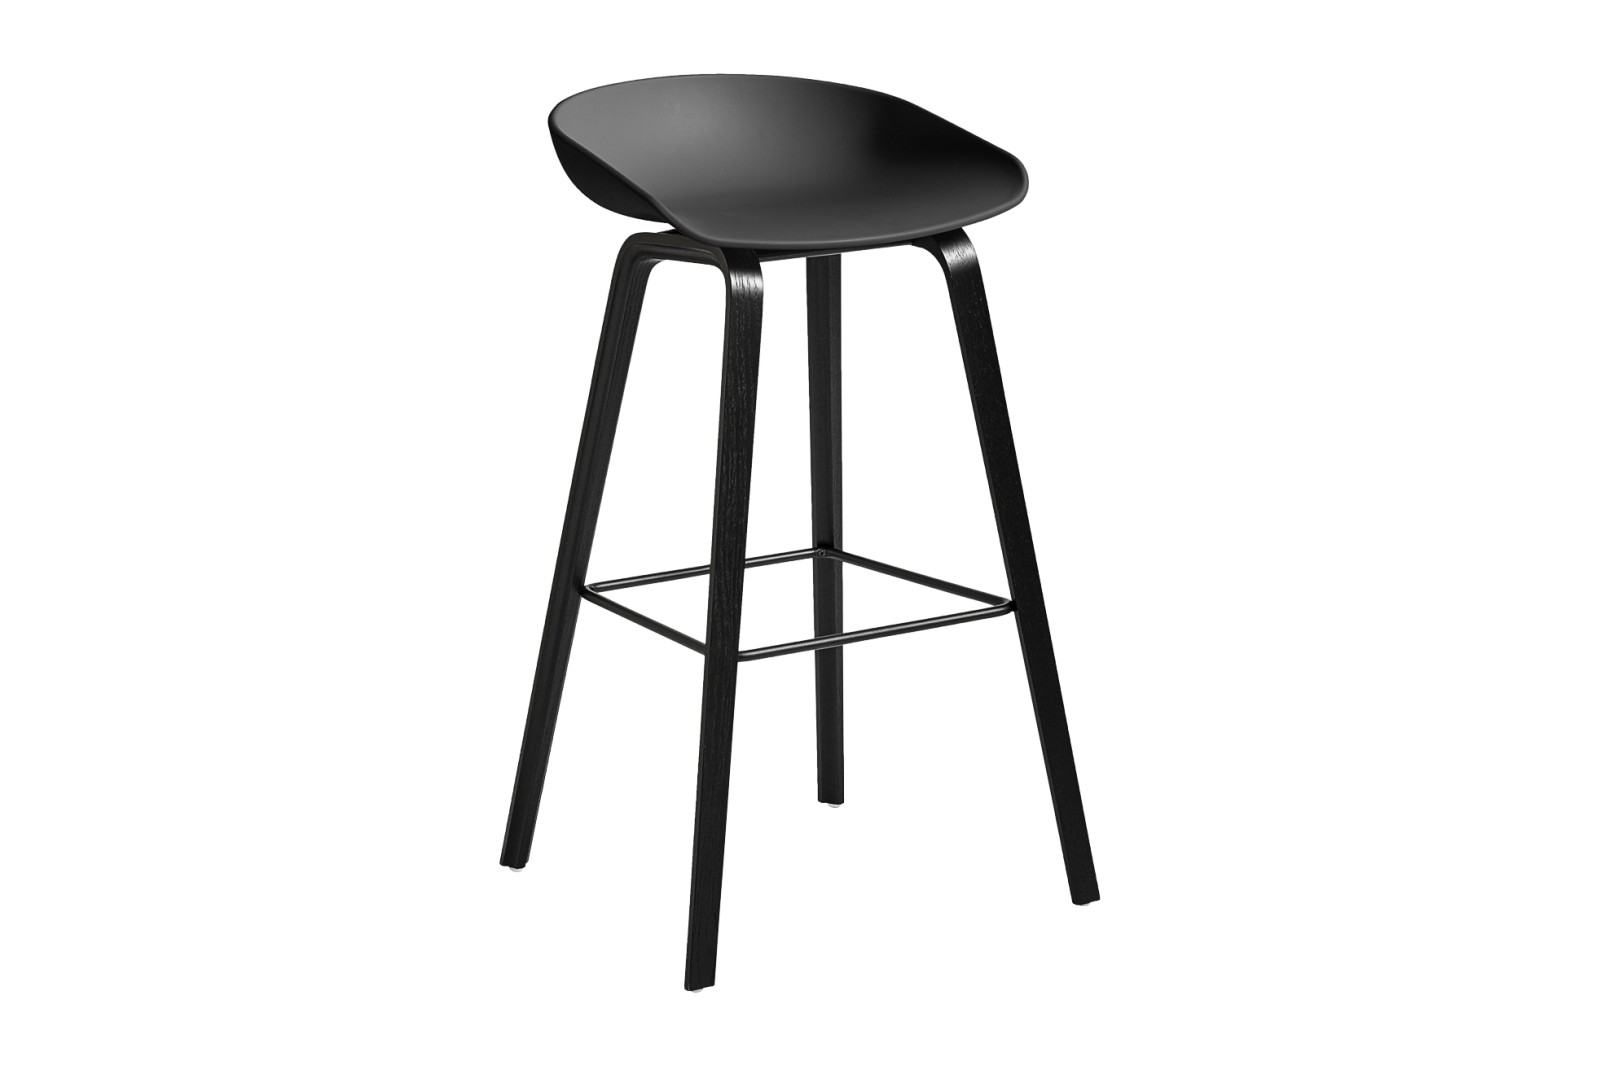 About A Stool AAS32 Black Stained Oak Base, Soft Black Seat, High, Black Powder Coated Steel